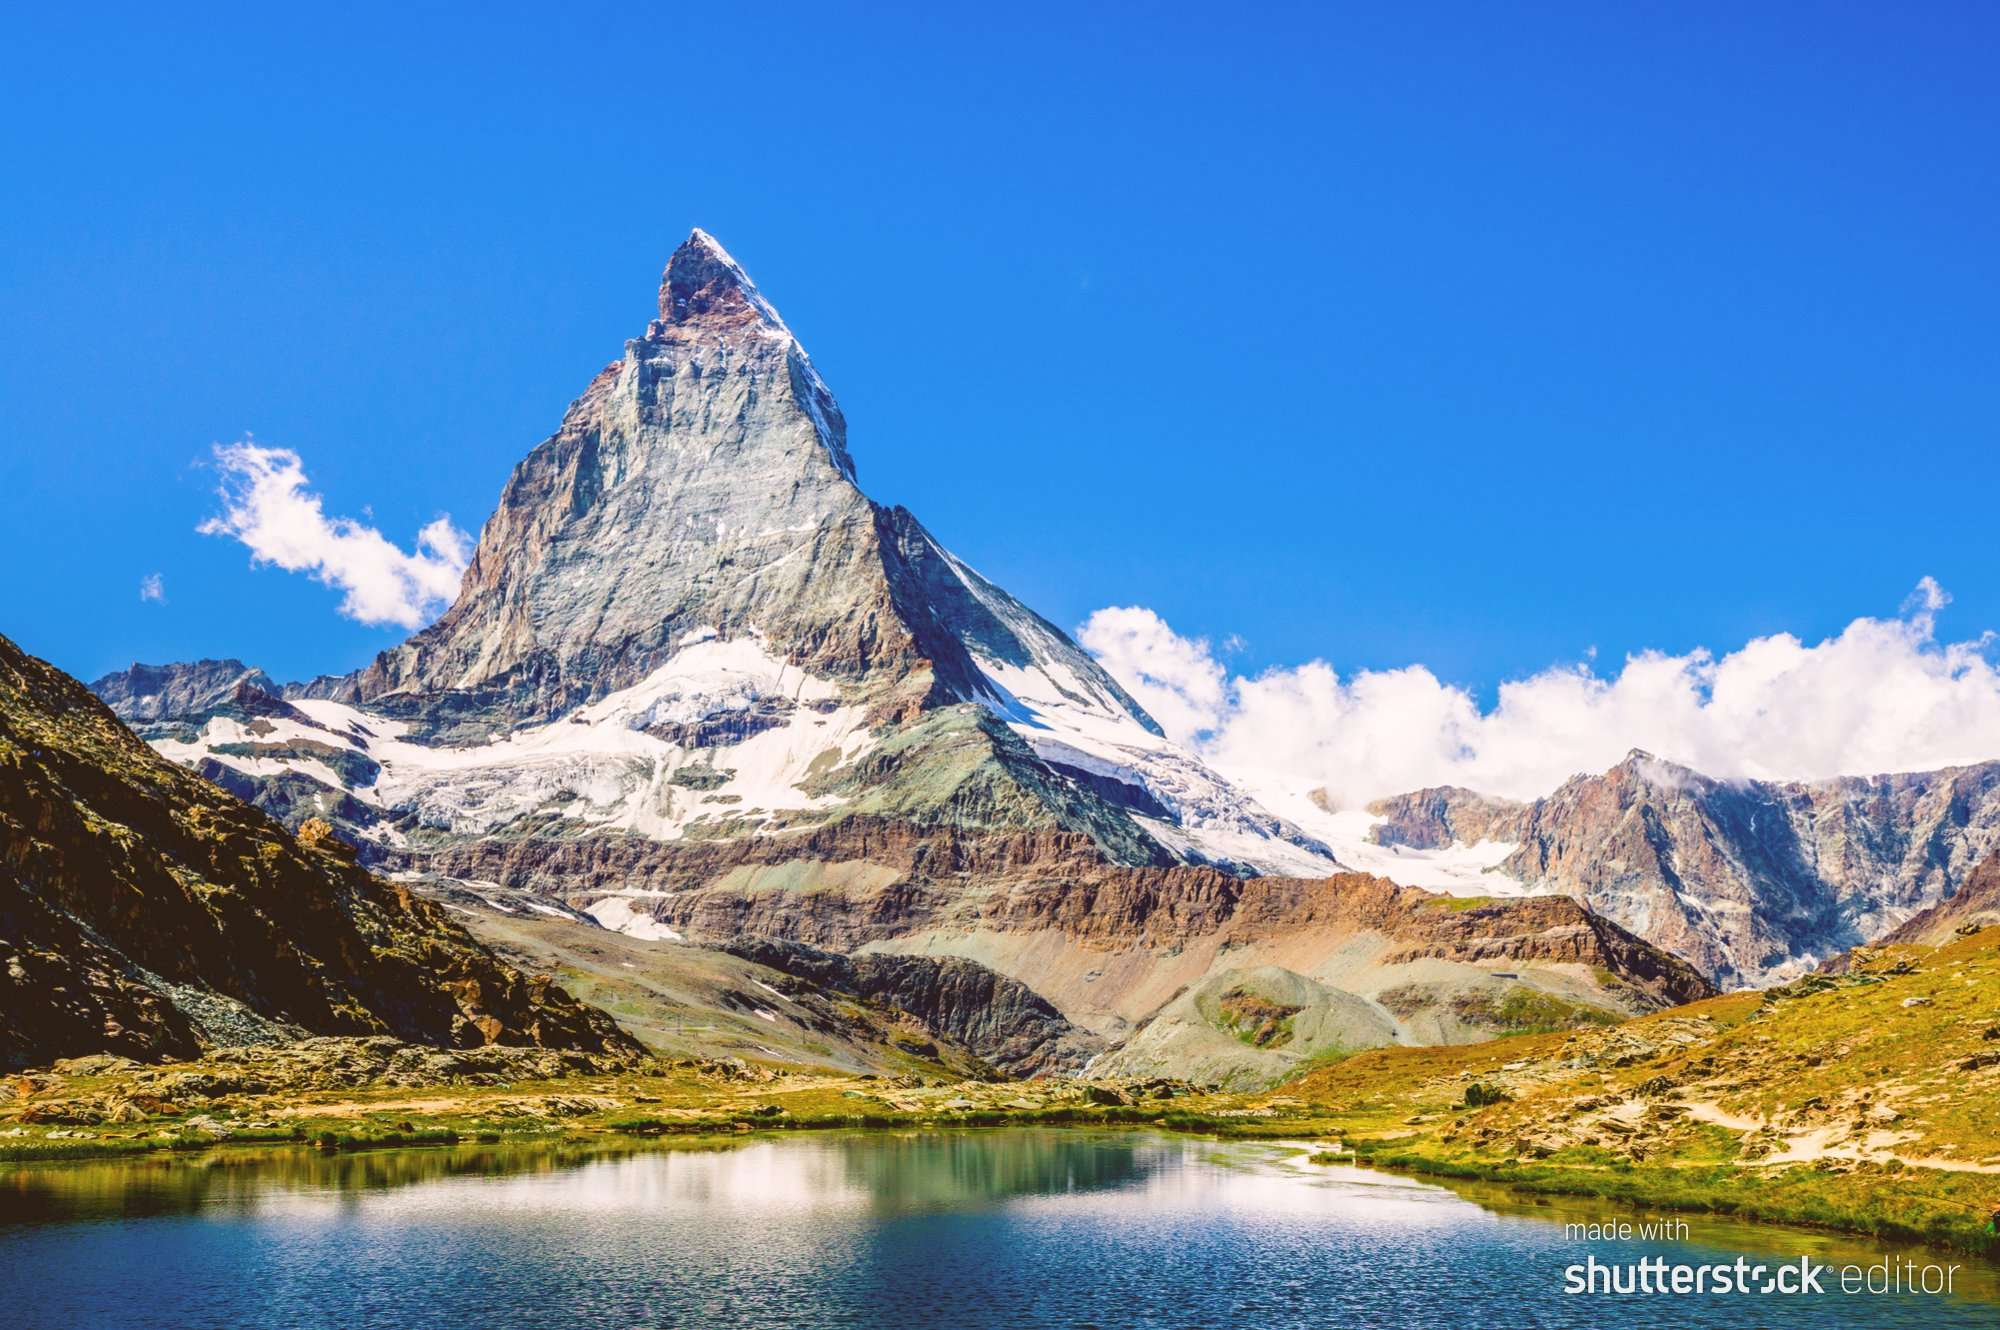 Walker's Haute Route: Arolla to Zermatt